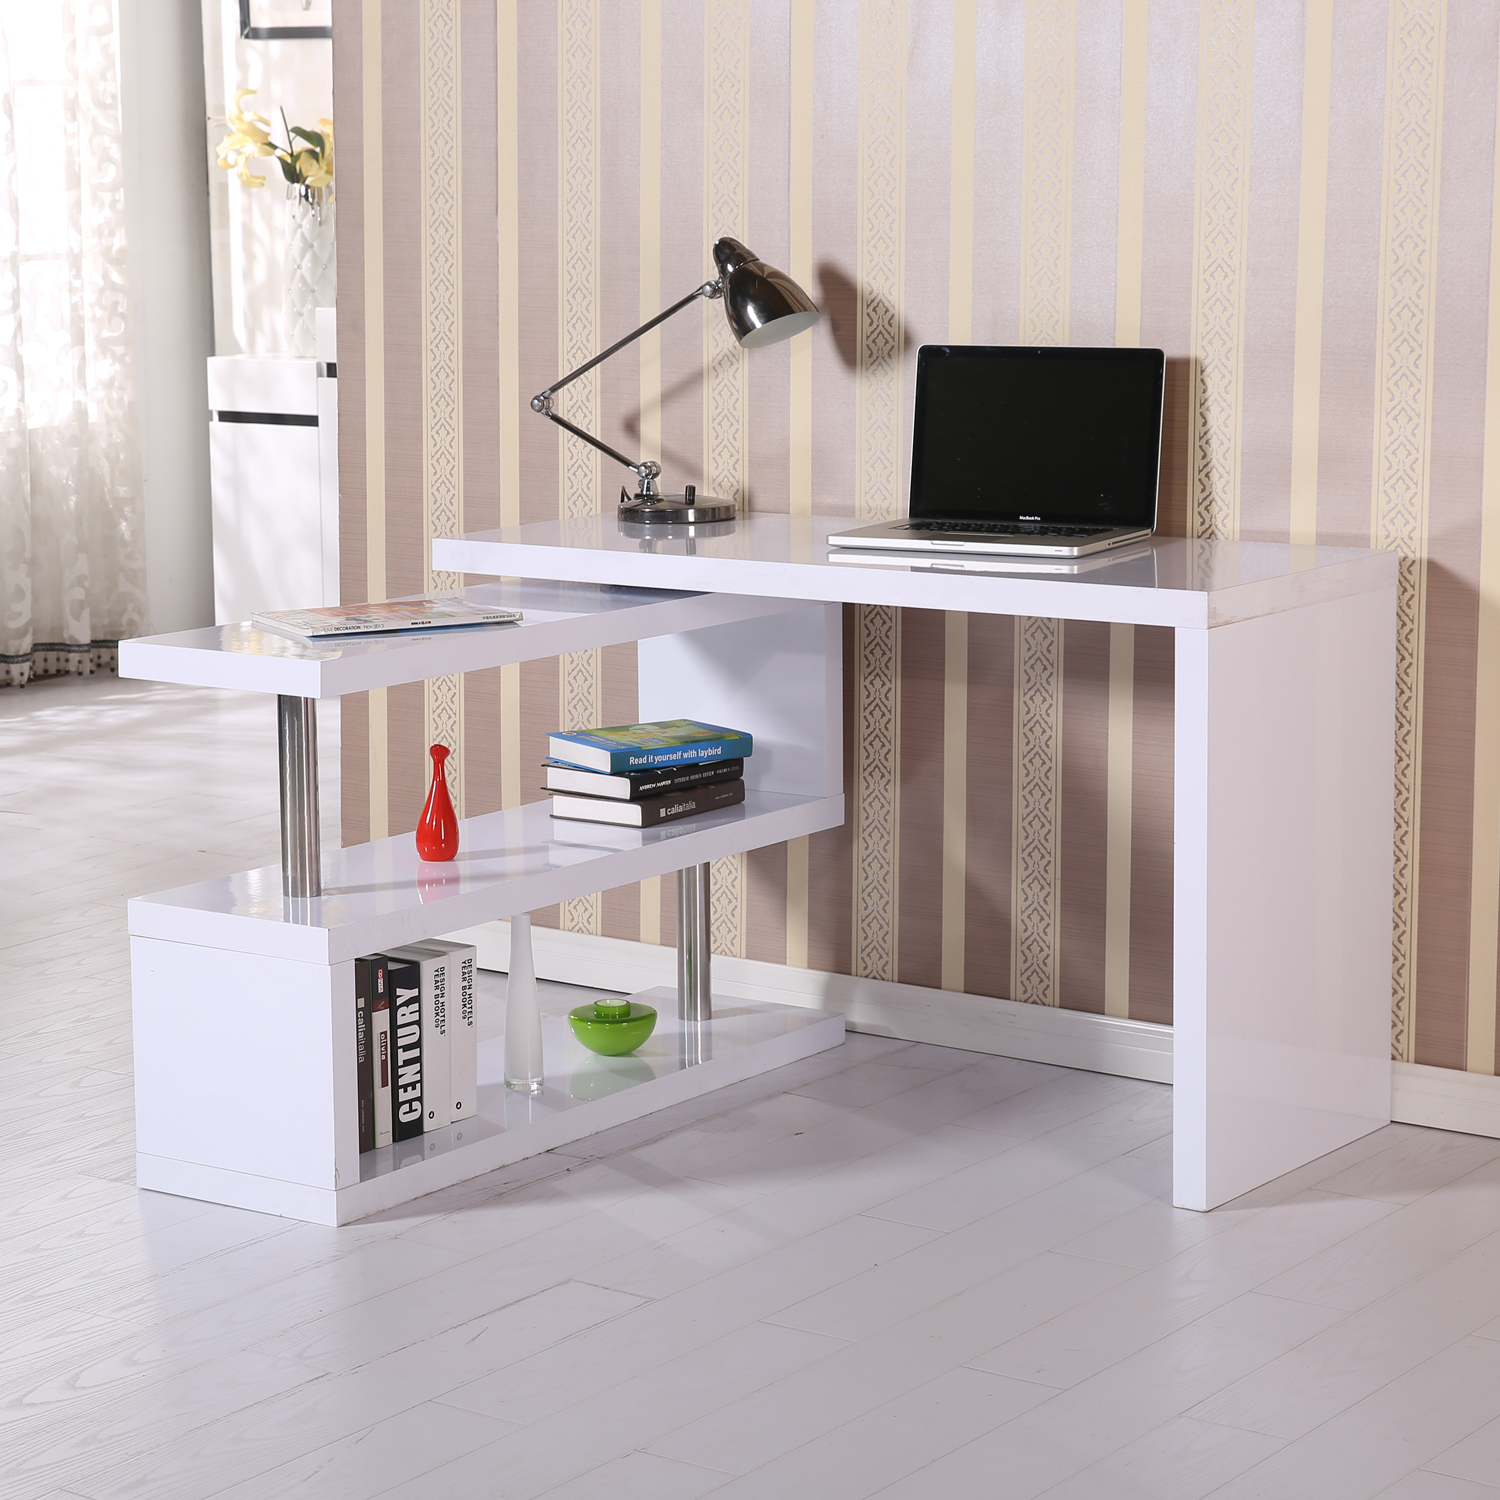 New HomCom Foldable Rotating Office Desk Shelf Combo